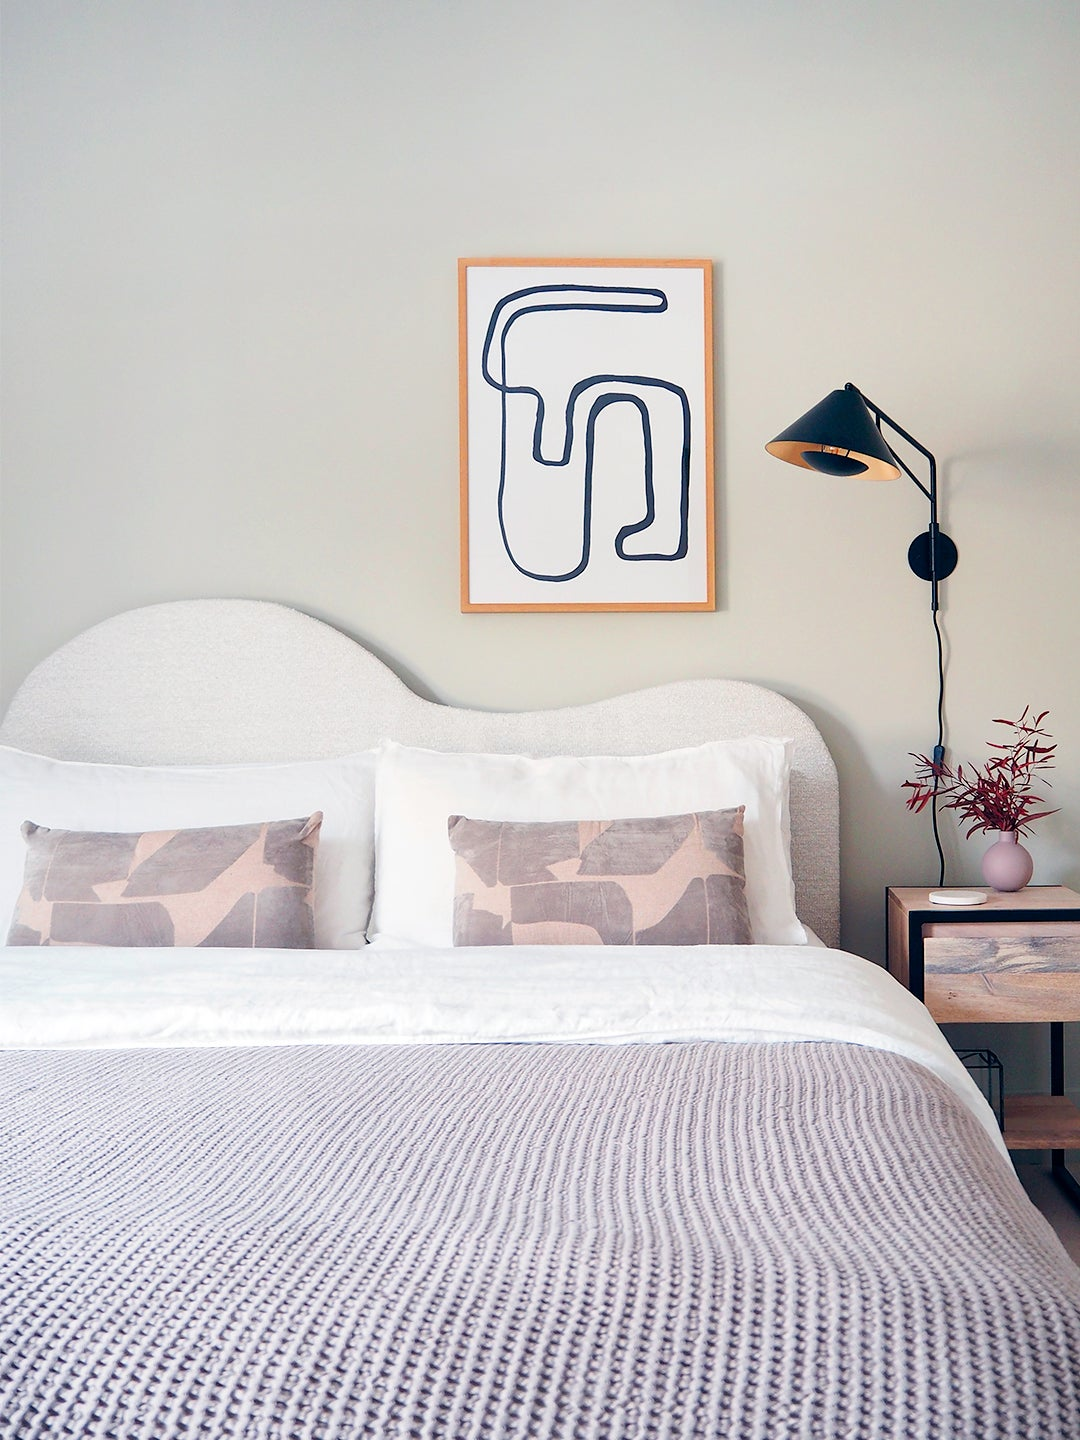 Get In on the Wavy Headboard Trend With This $275 DIY